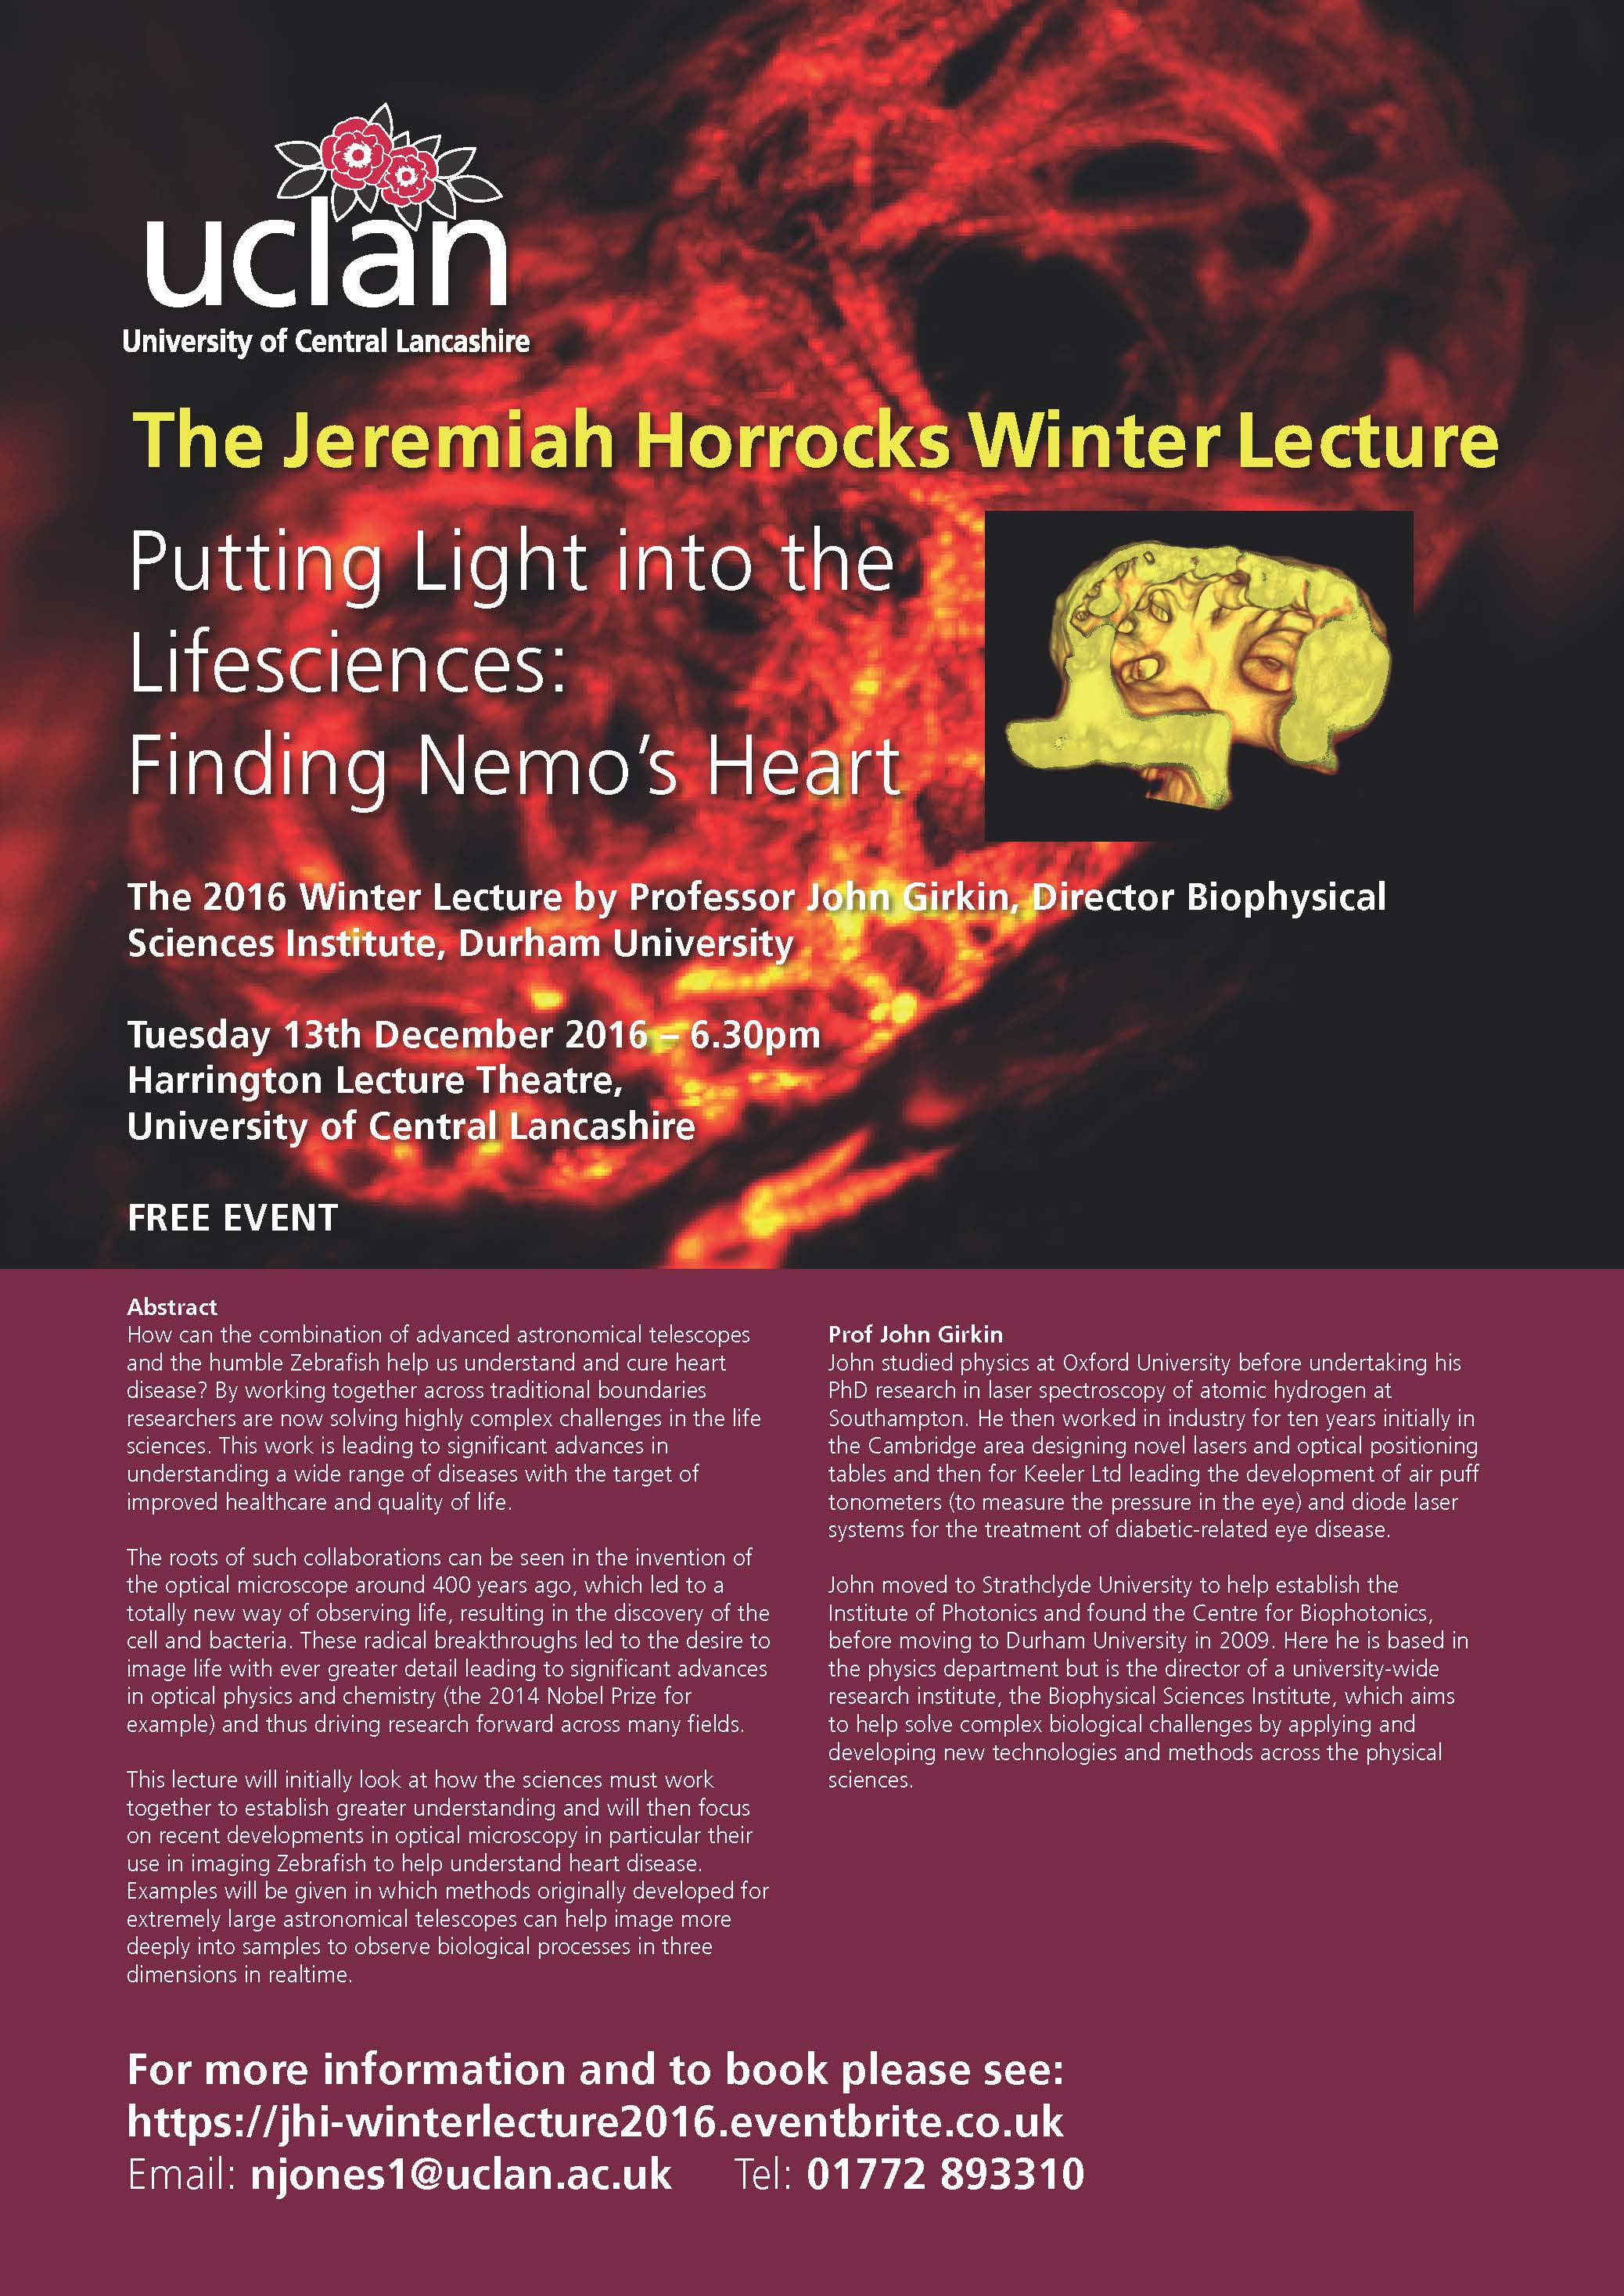 The Jeremiah Horrocks Wnter Lecture